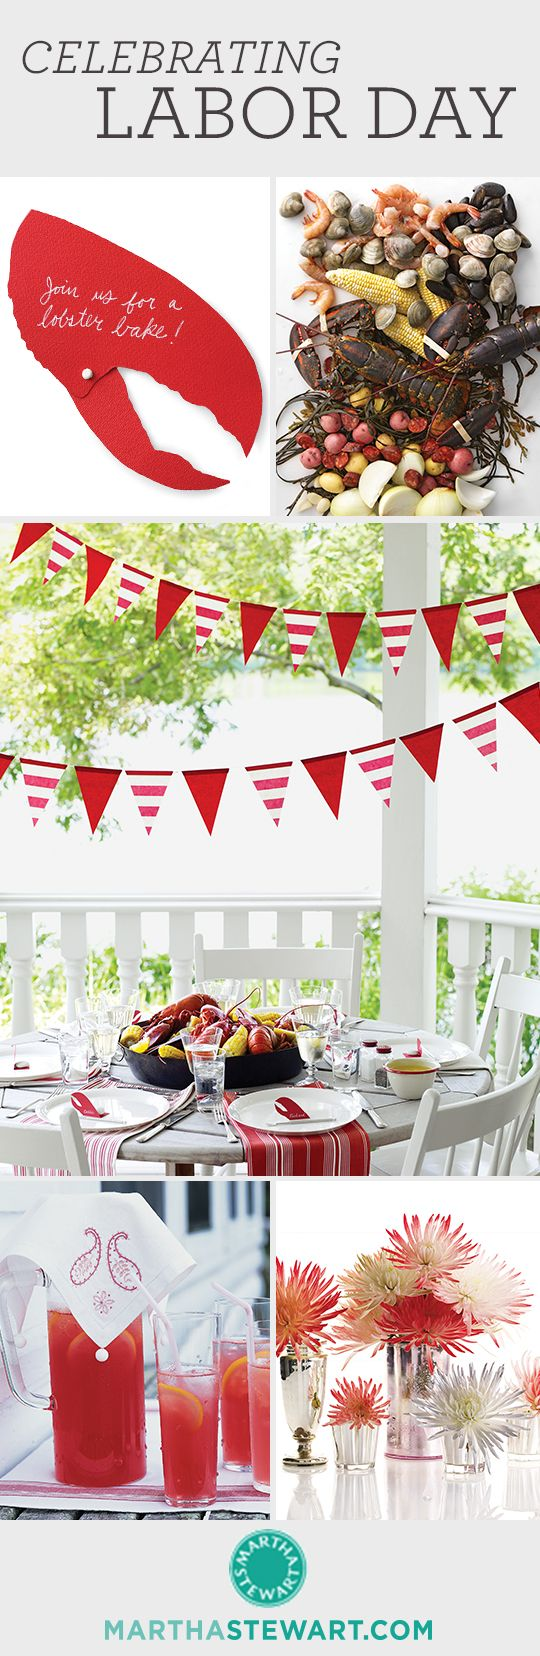 Celebrate Labor Day with our invitations, decor ideas, and recipes!